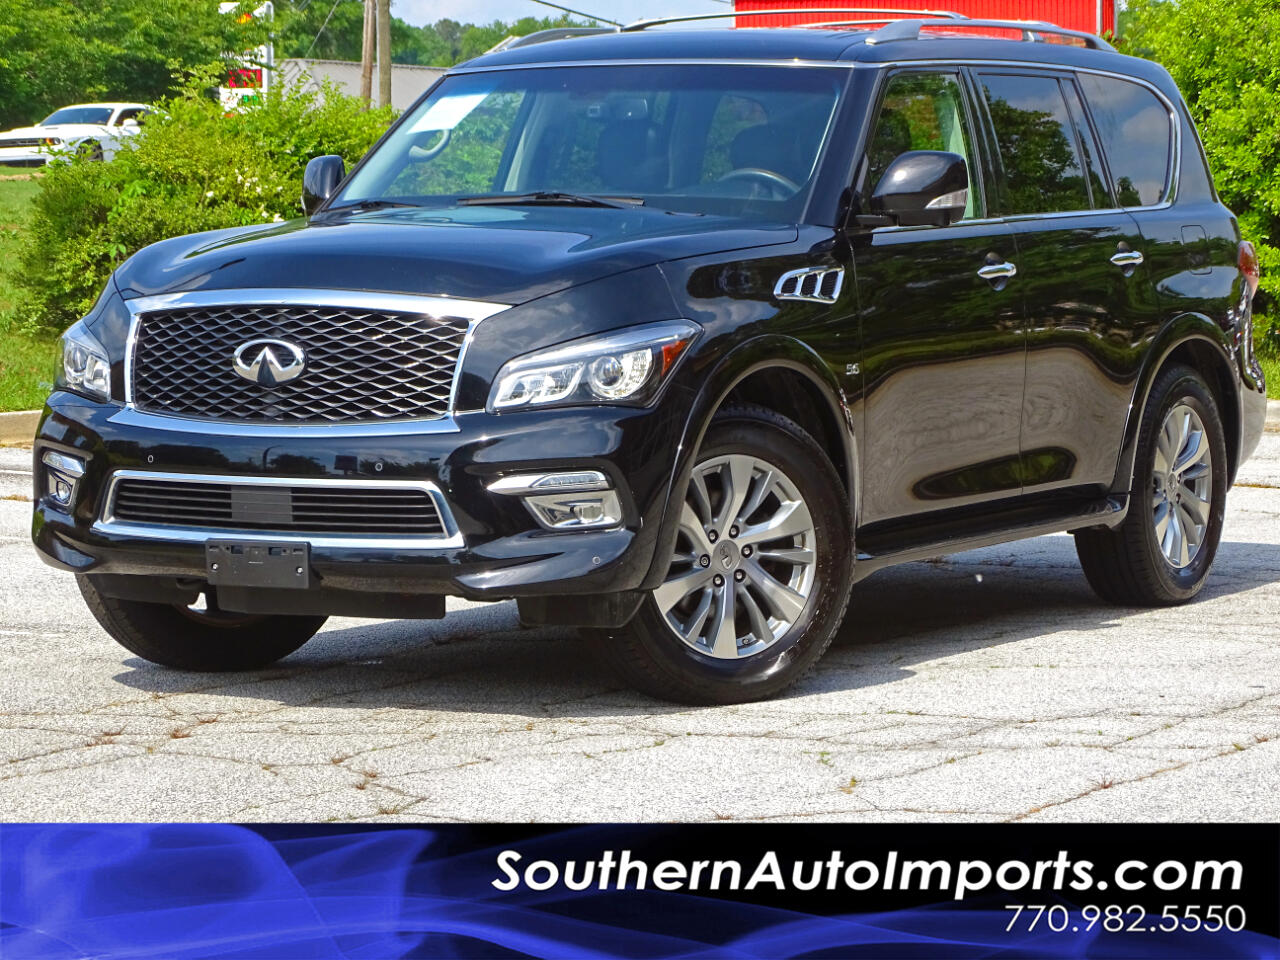 2015 Infiniti QX80 4WD Back up Cam Navigation System 3rd Row Seats